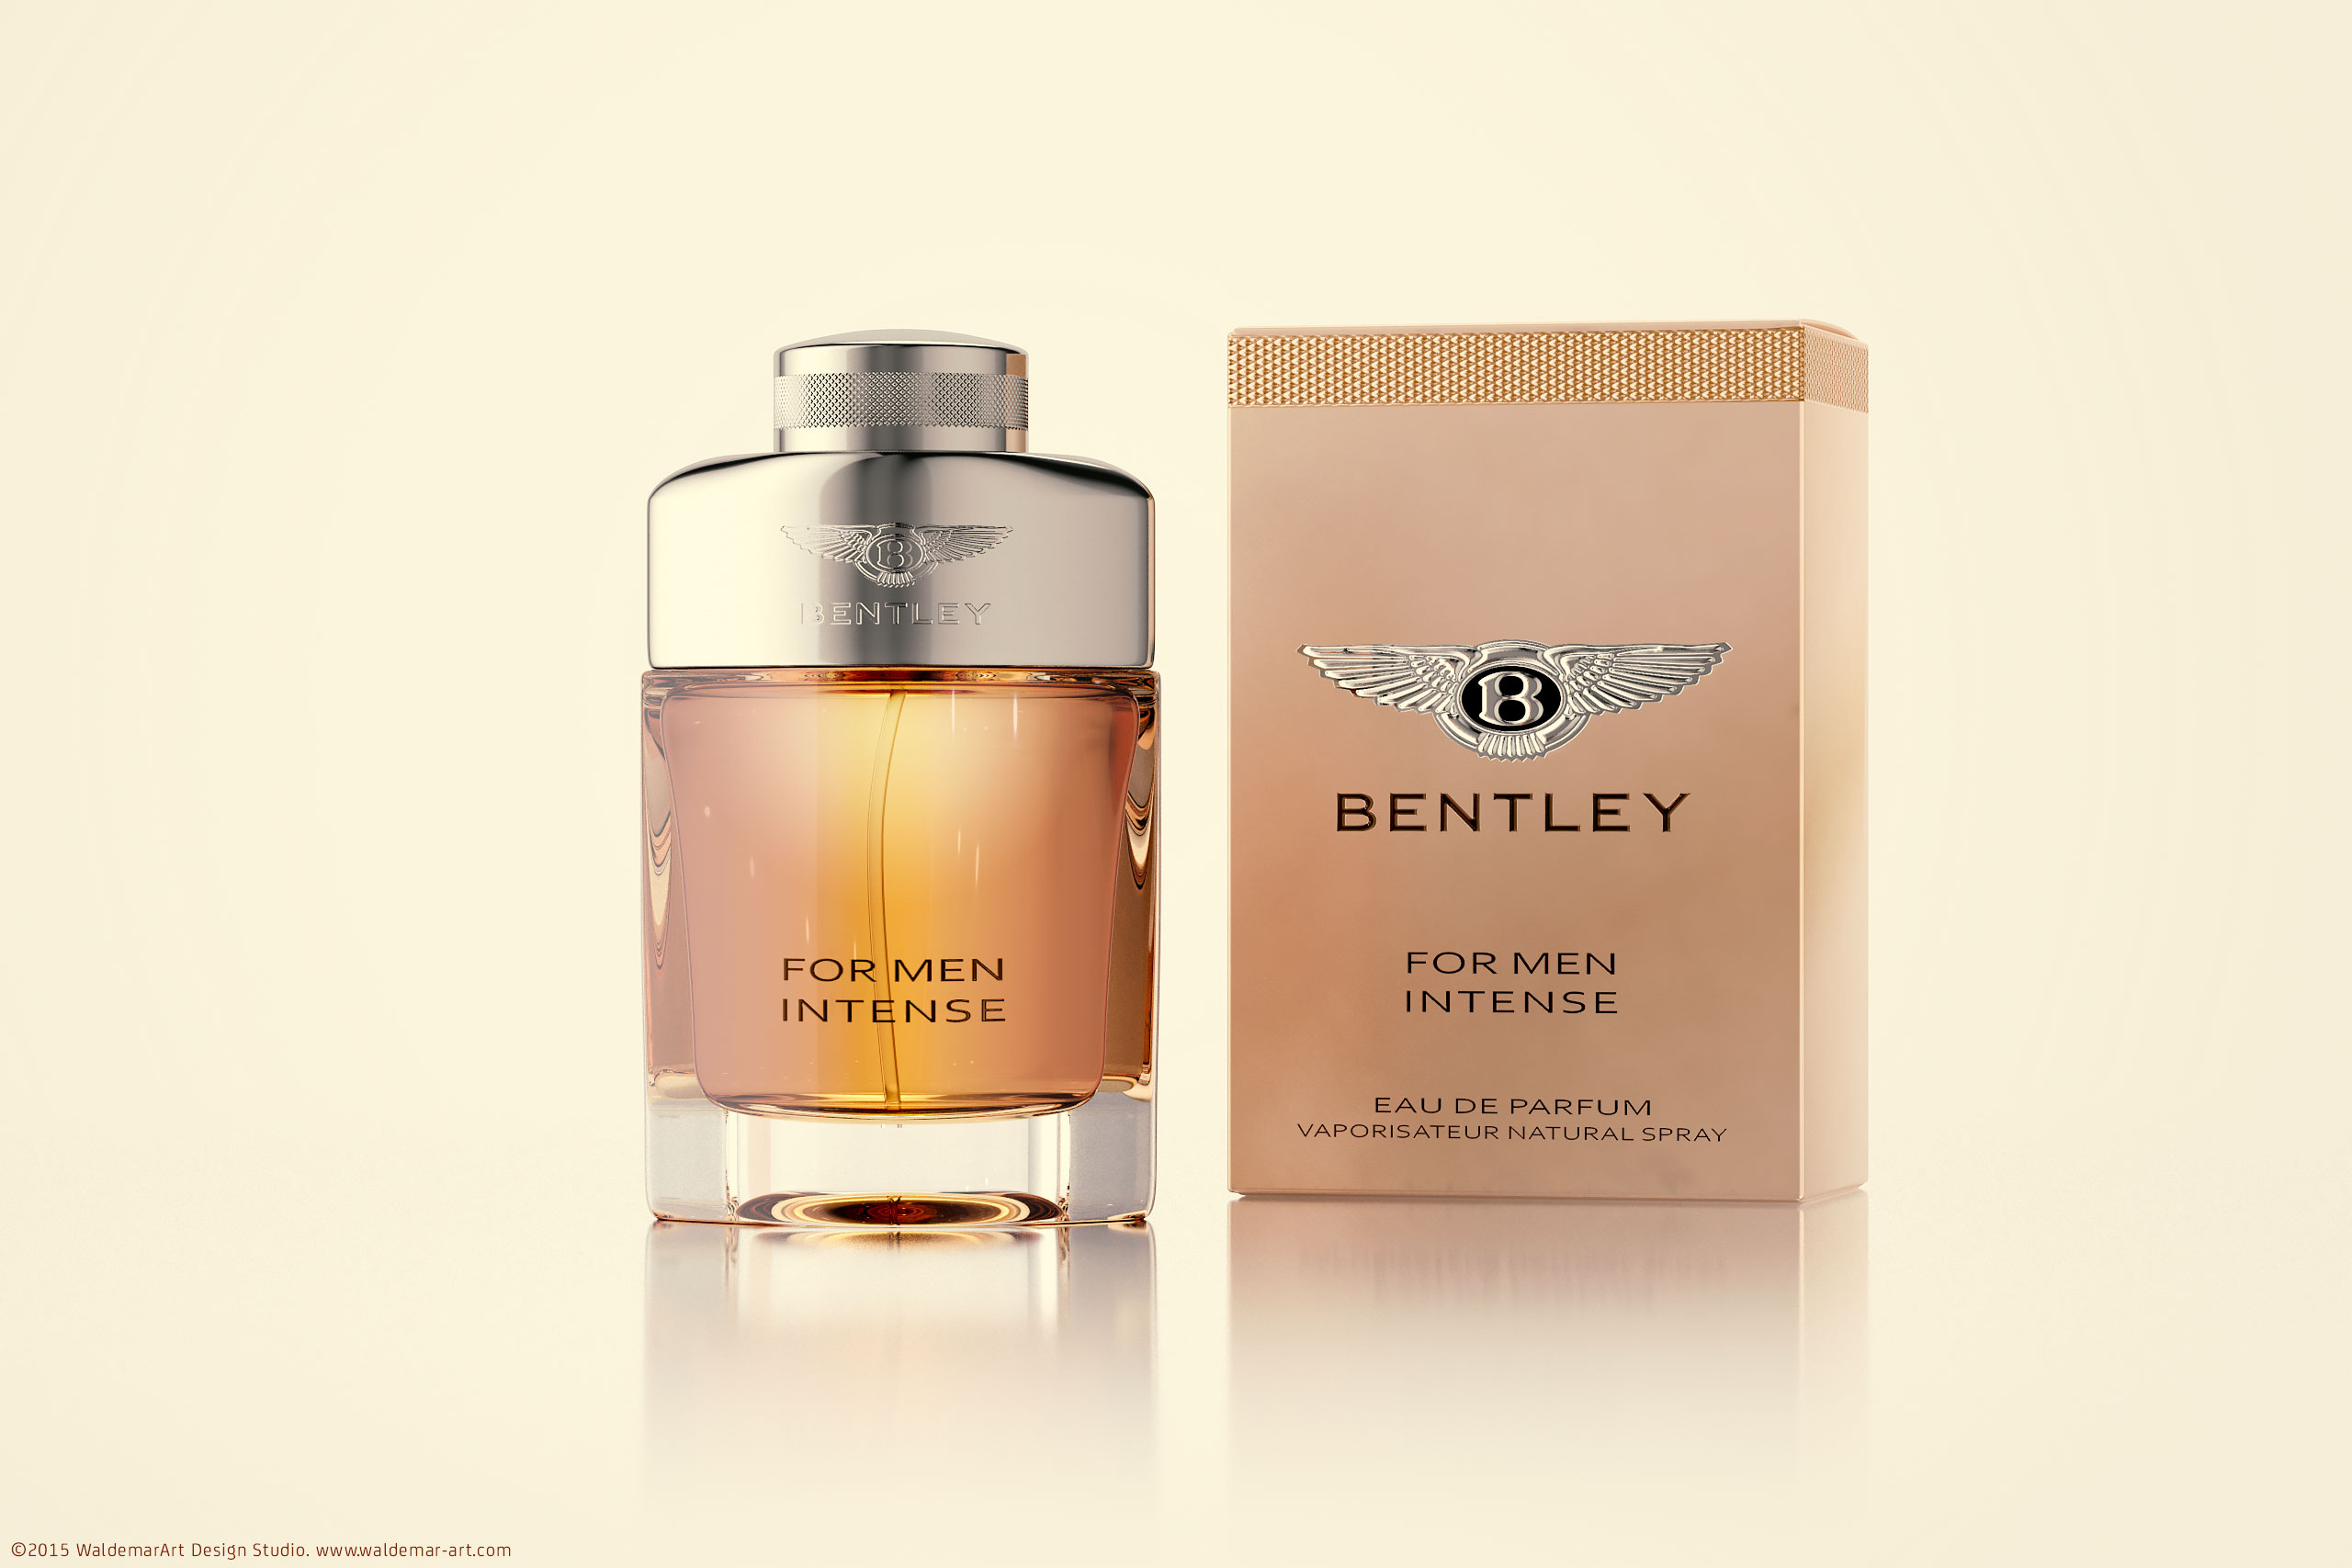 Bentley For Men Intense  - 3D Render